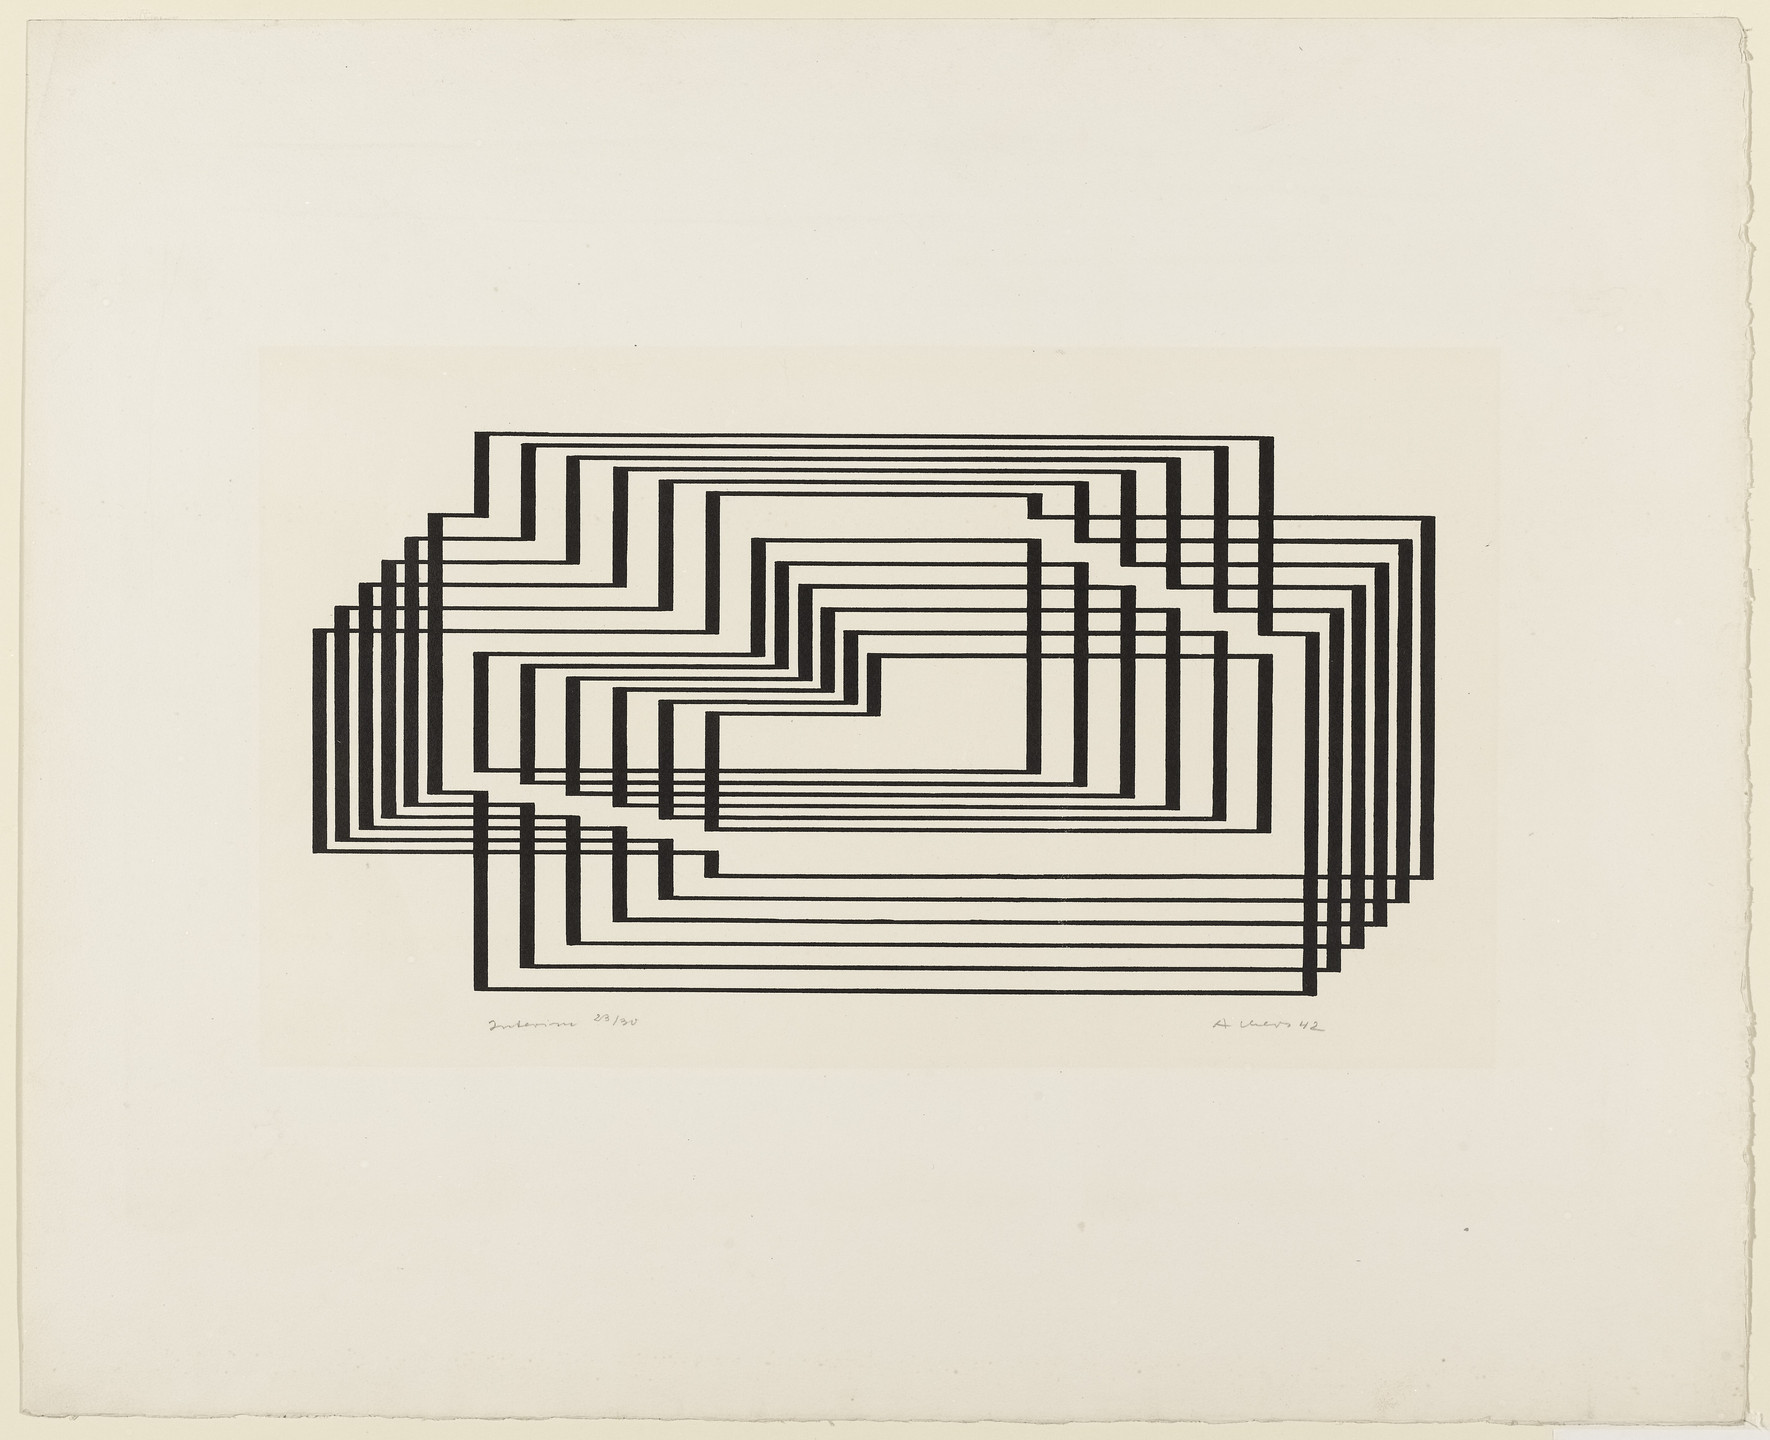 Josef Albers. Interim from the series Graphic Tectonic. 1942